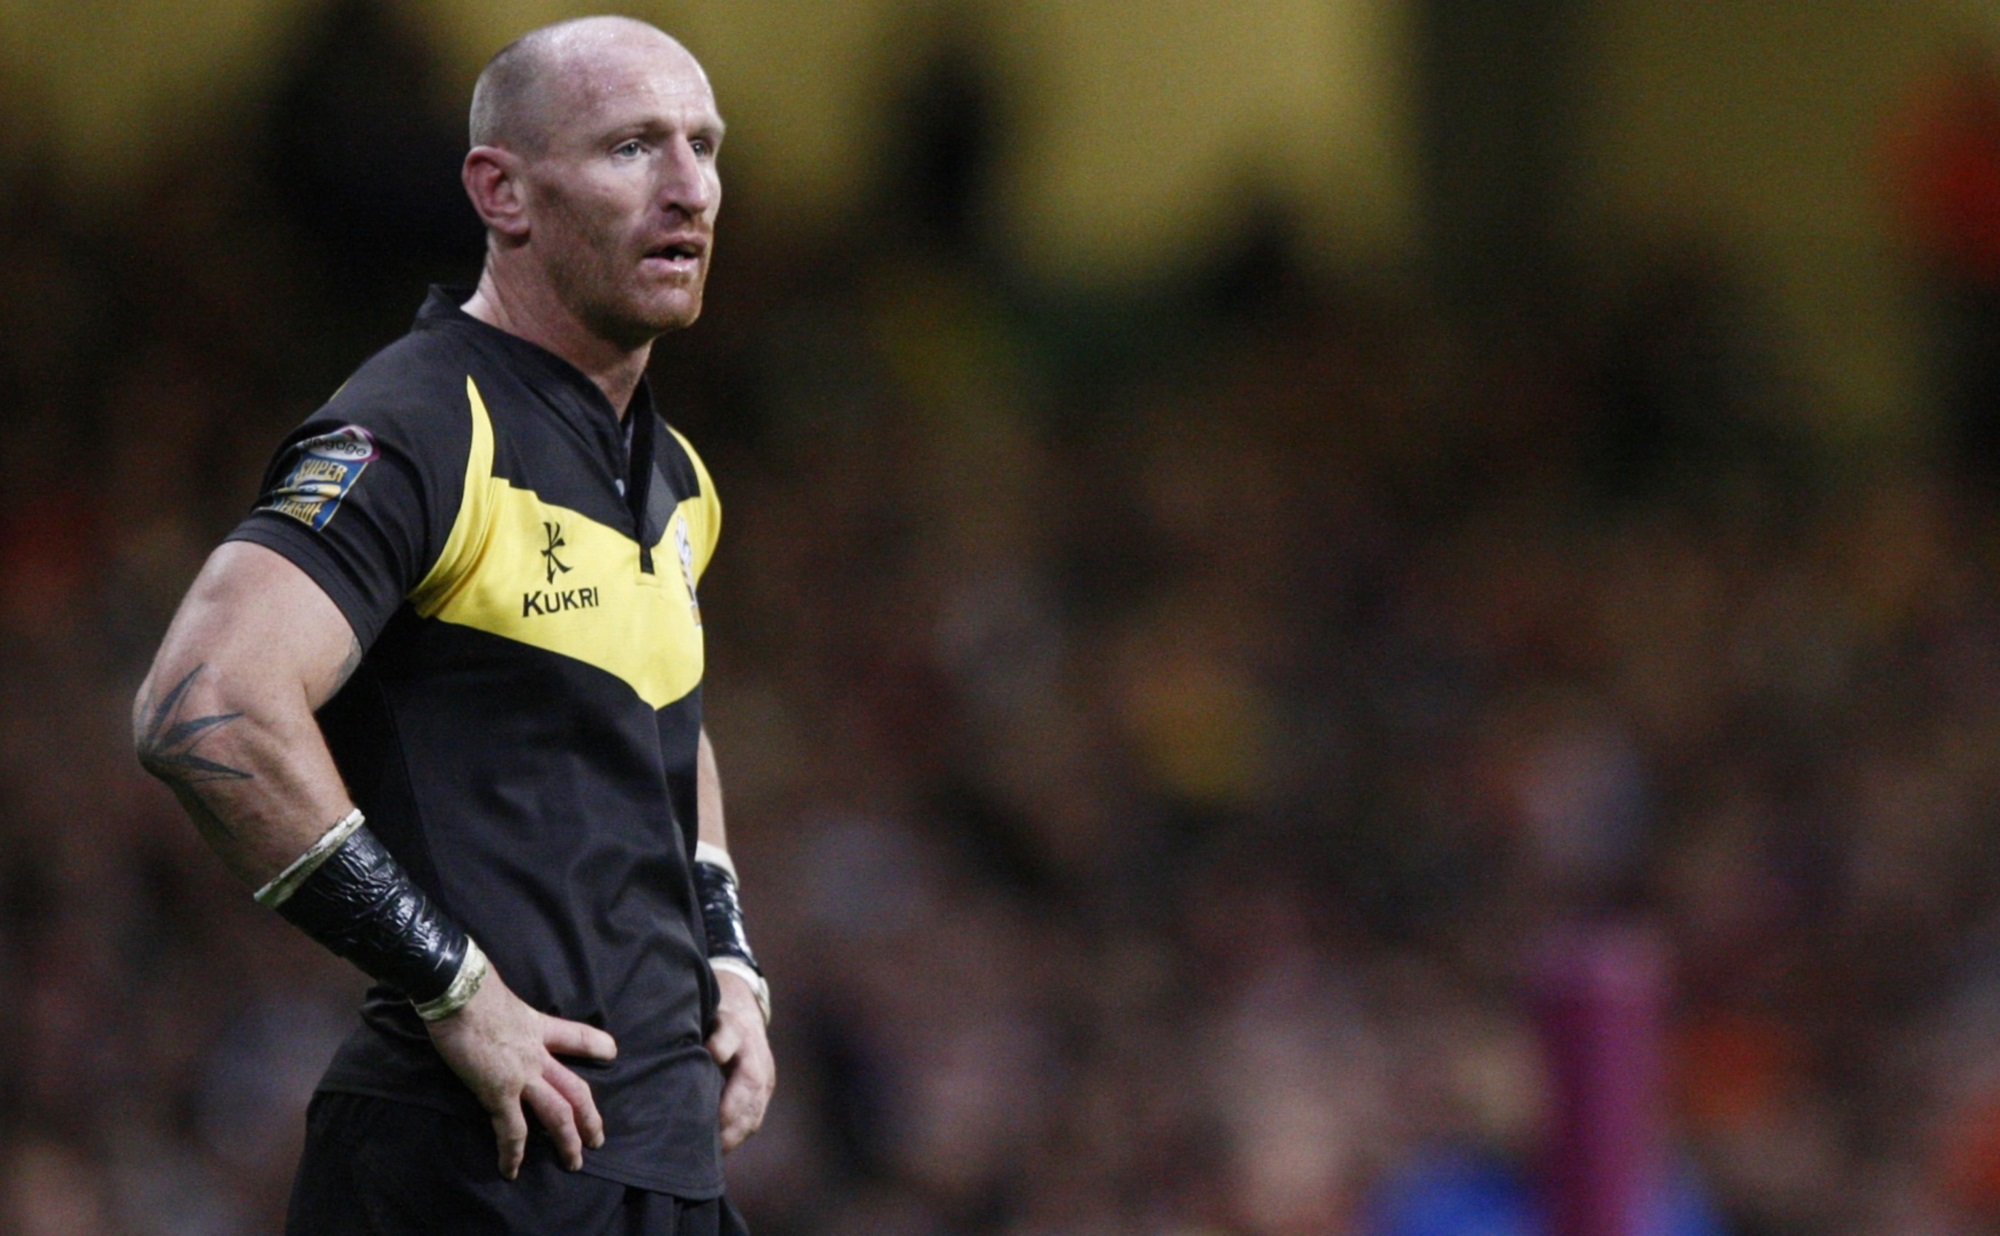 Gareth Thomas stands hands on hips during a break in the action